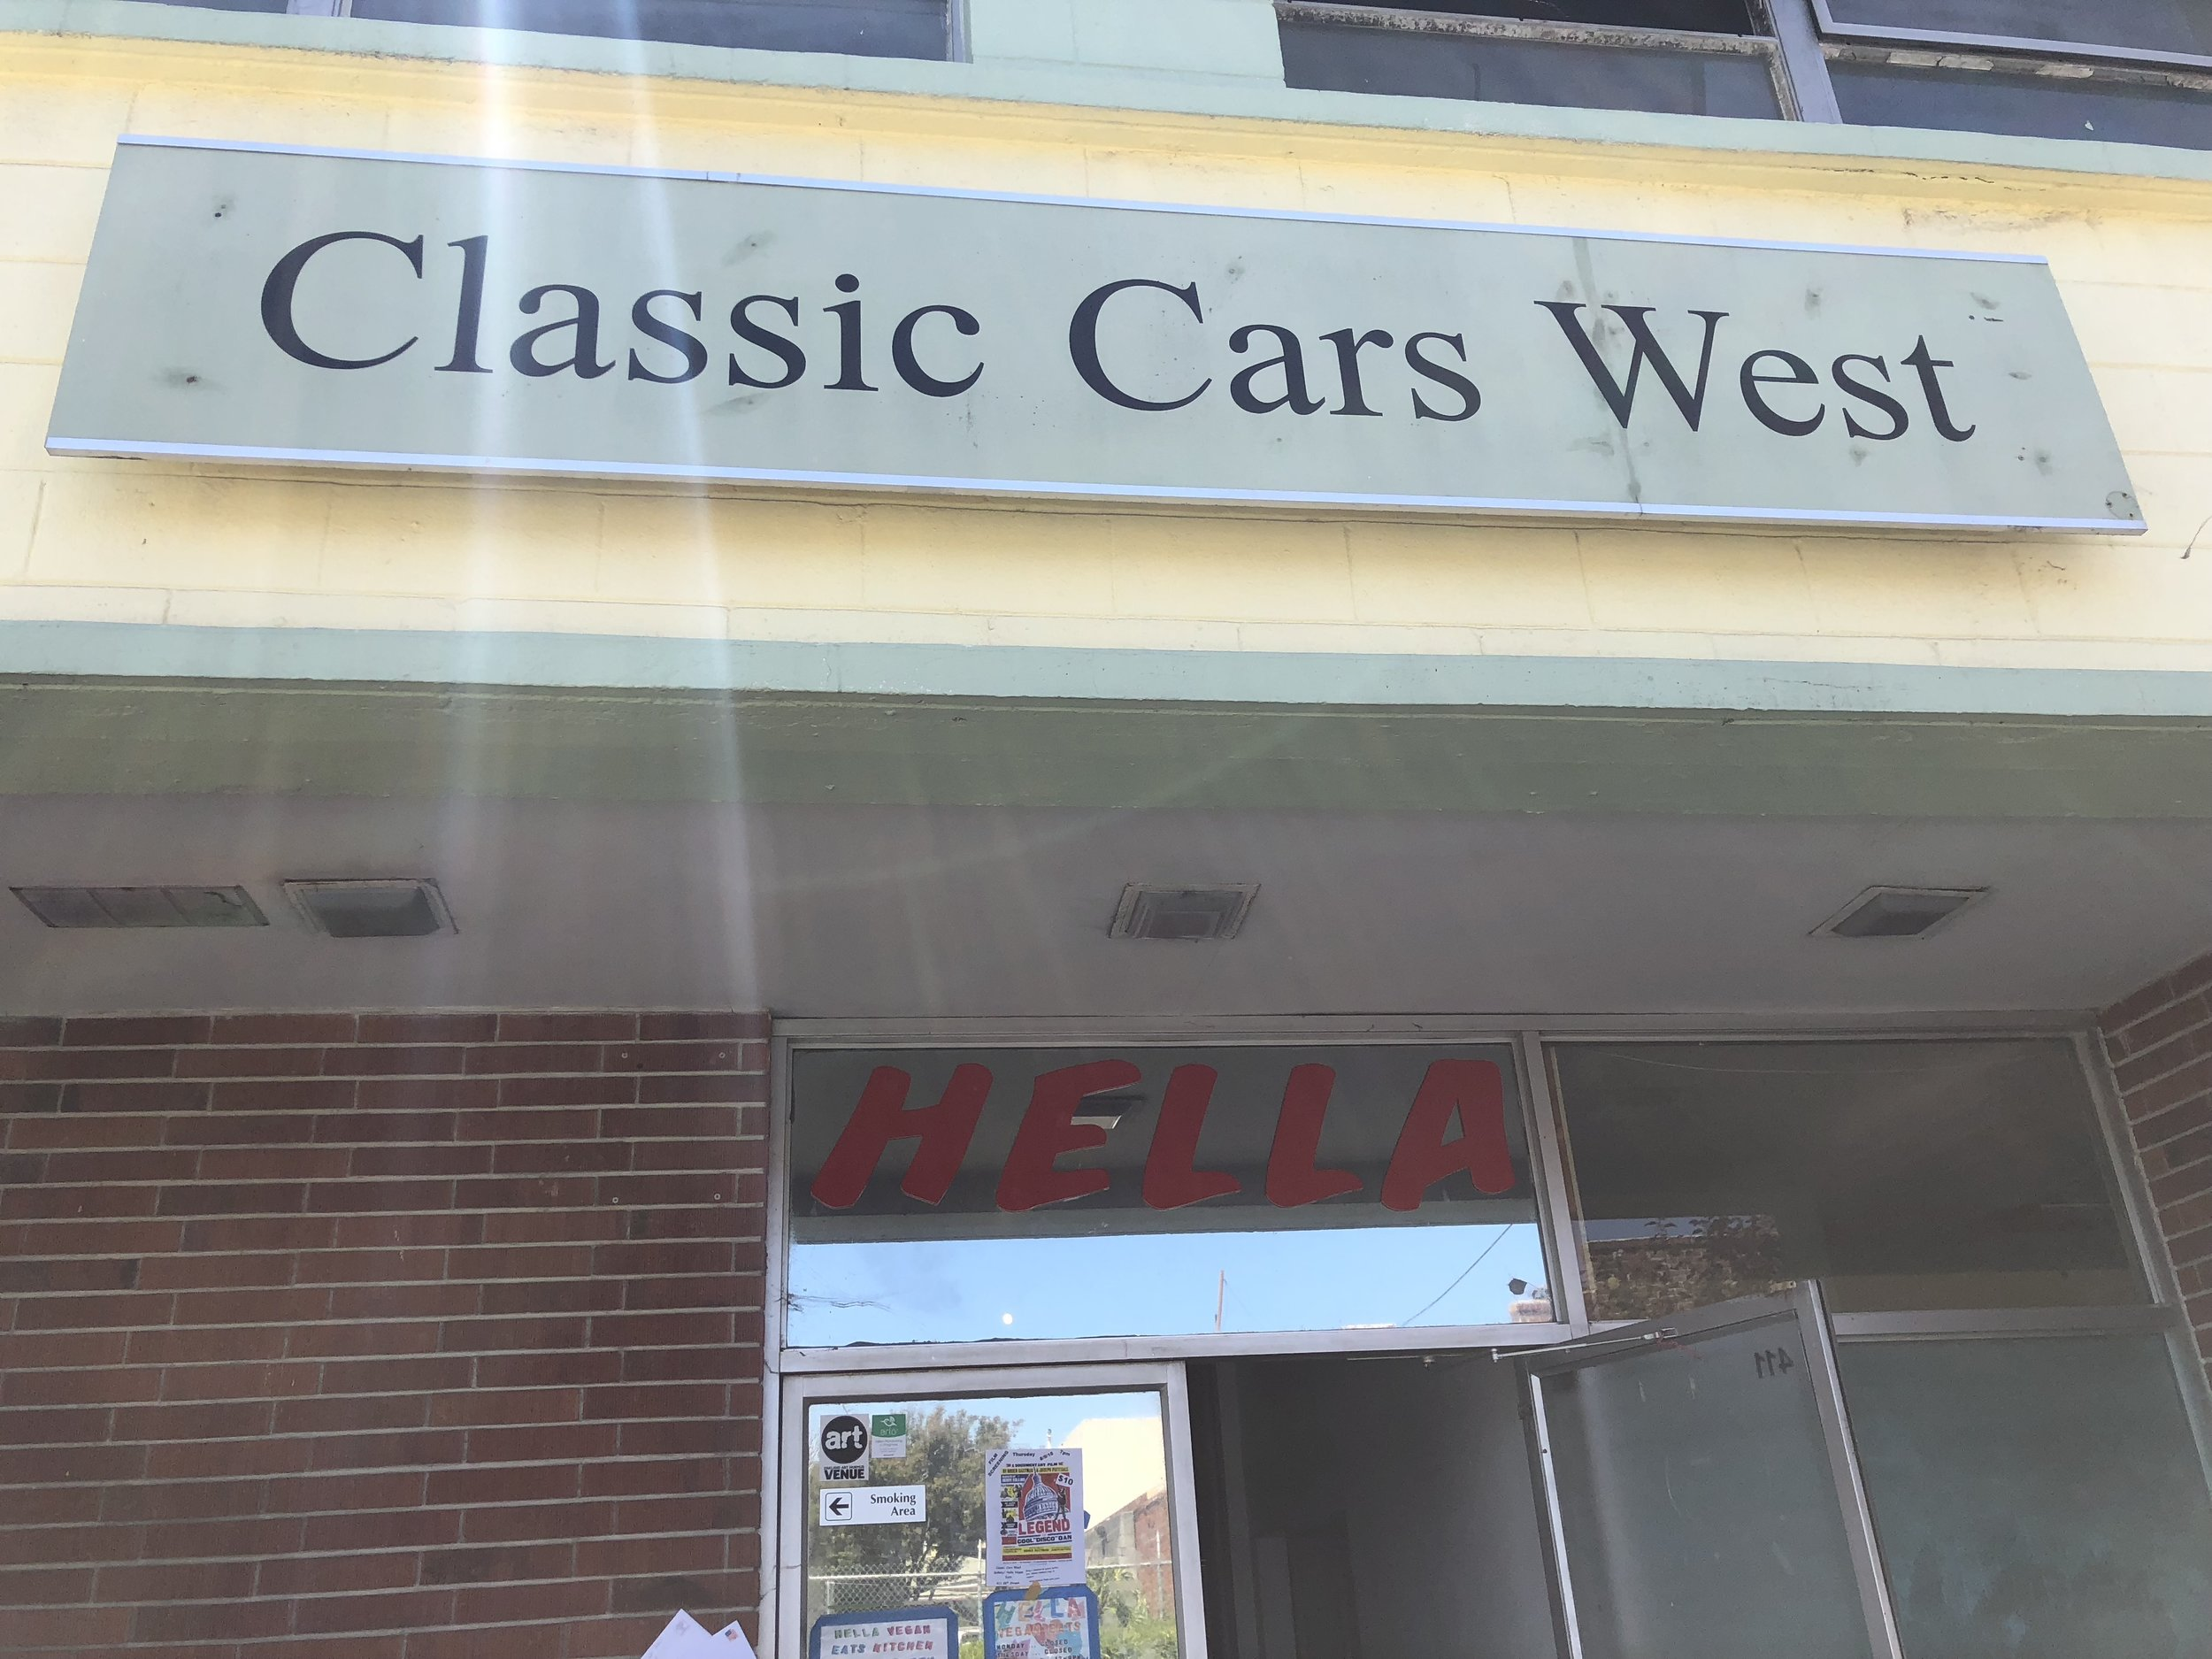 Look for the Classic Cars West sign